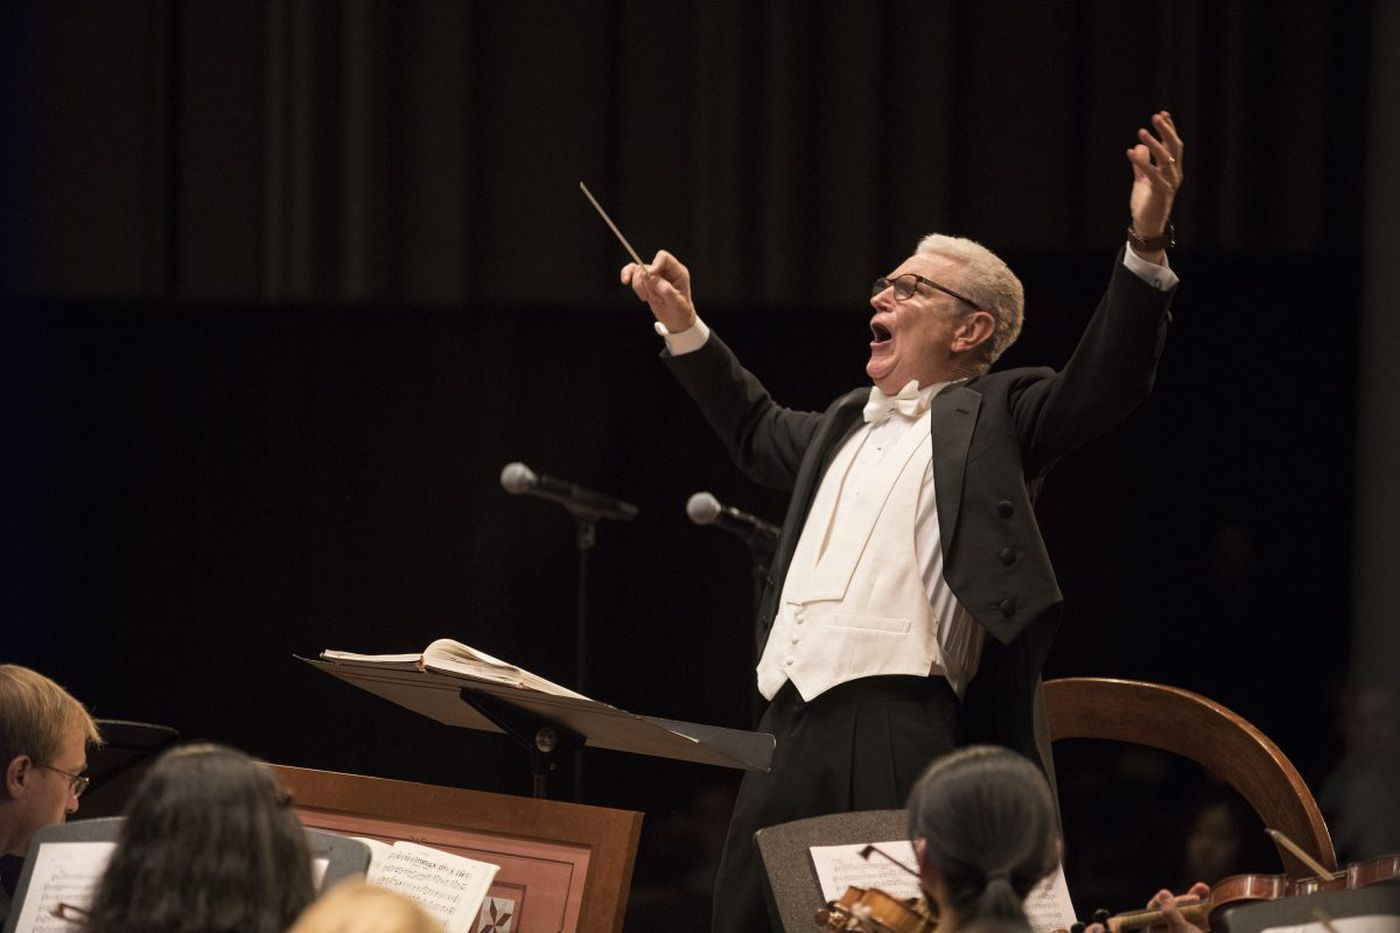 Penn choral director William Parberry retires after 45 years